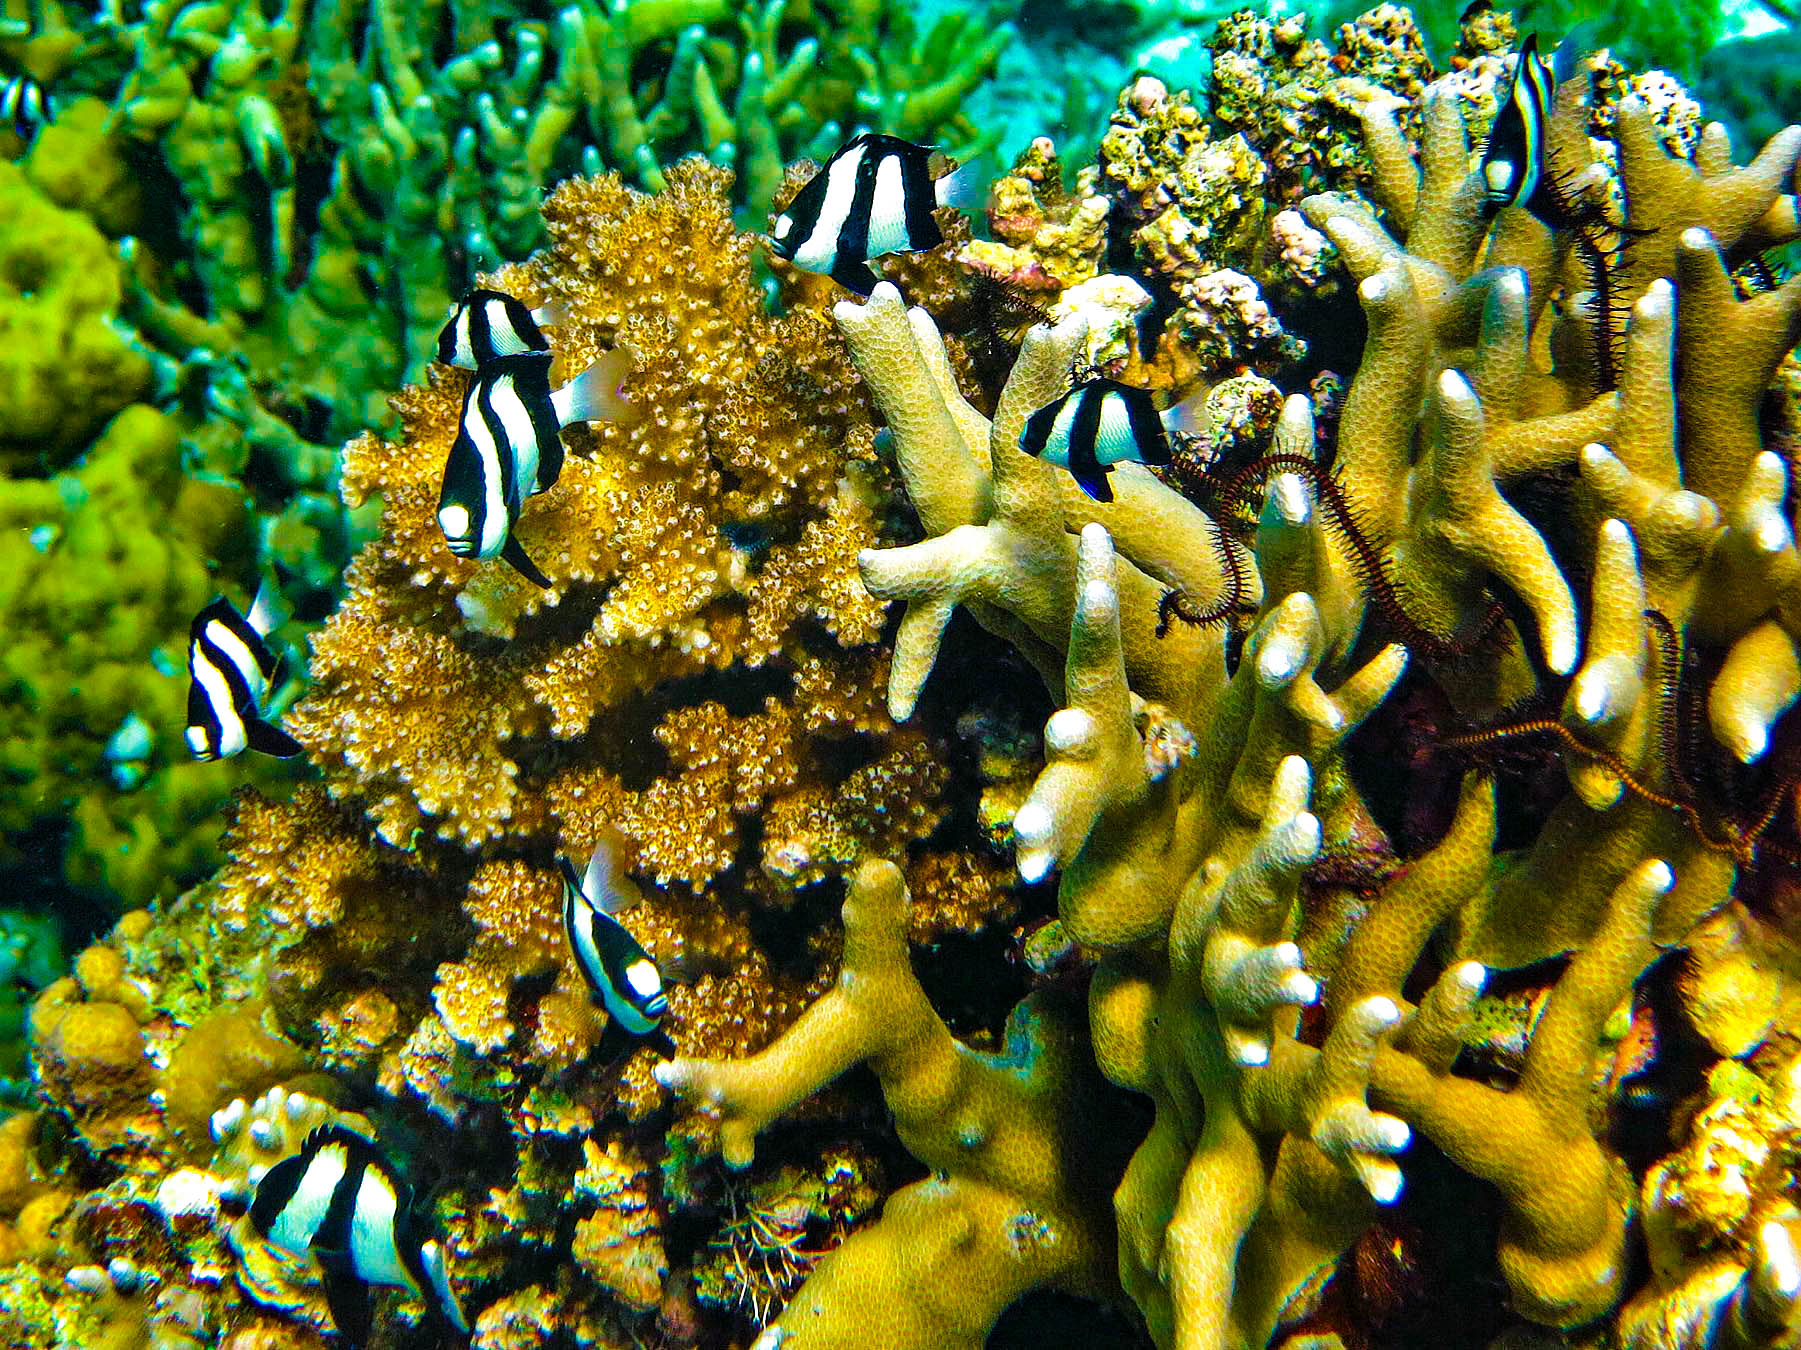 Colorful tropical reef fishes swimming about colorful coral formations in one of the top dive sites in the Philippines